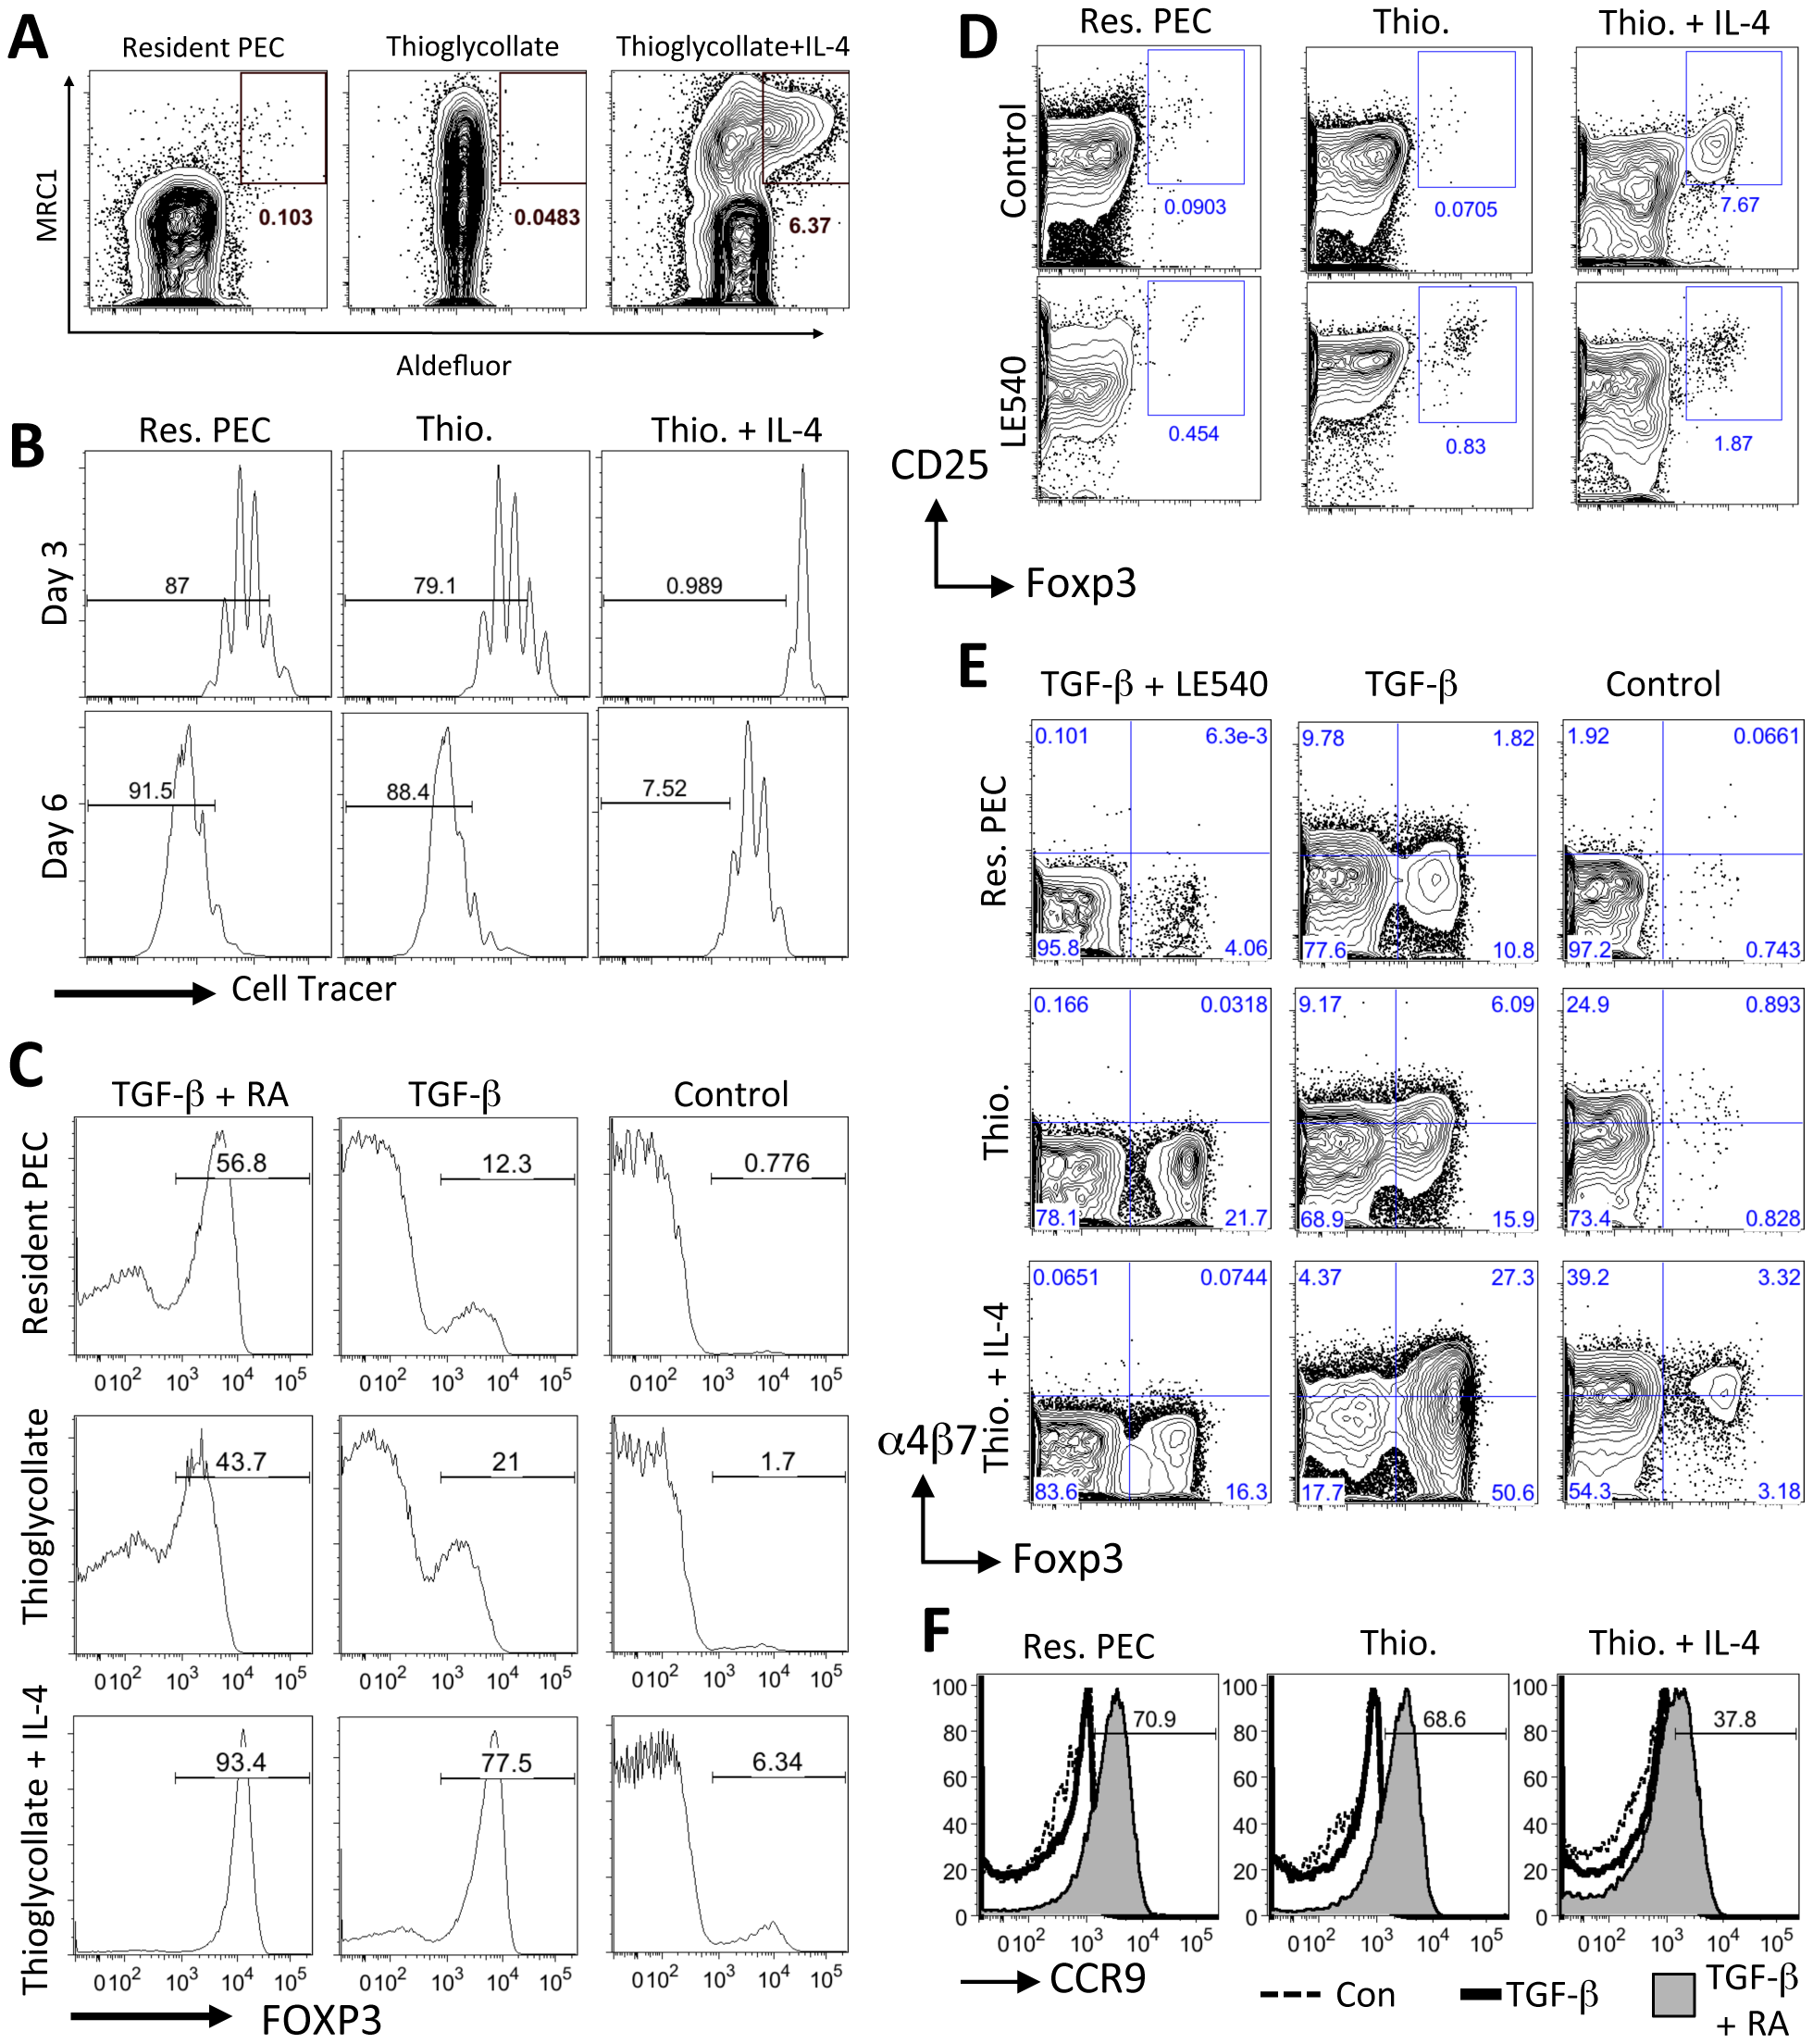 AAMφ have an enhanced capacity to induce Foxp3 expression in T cells.